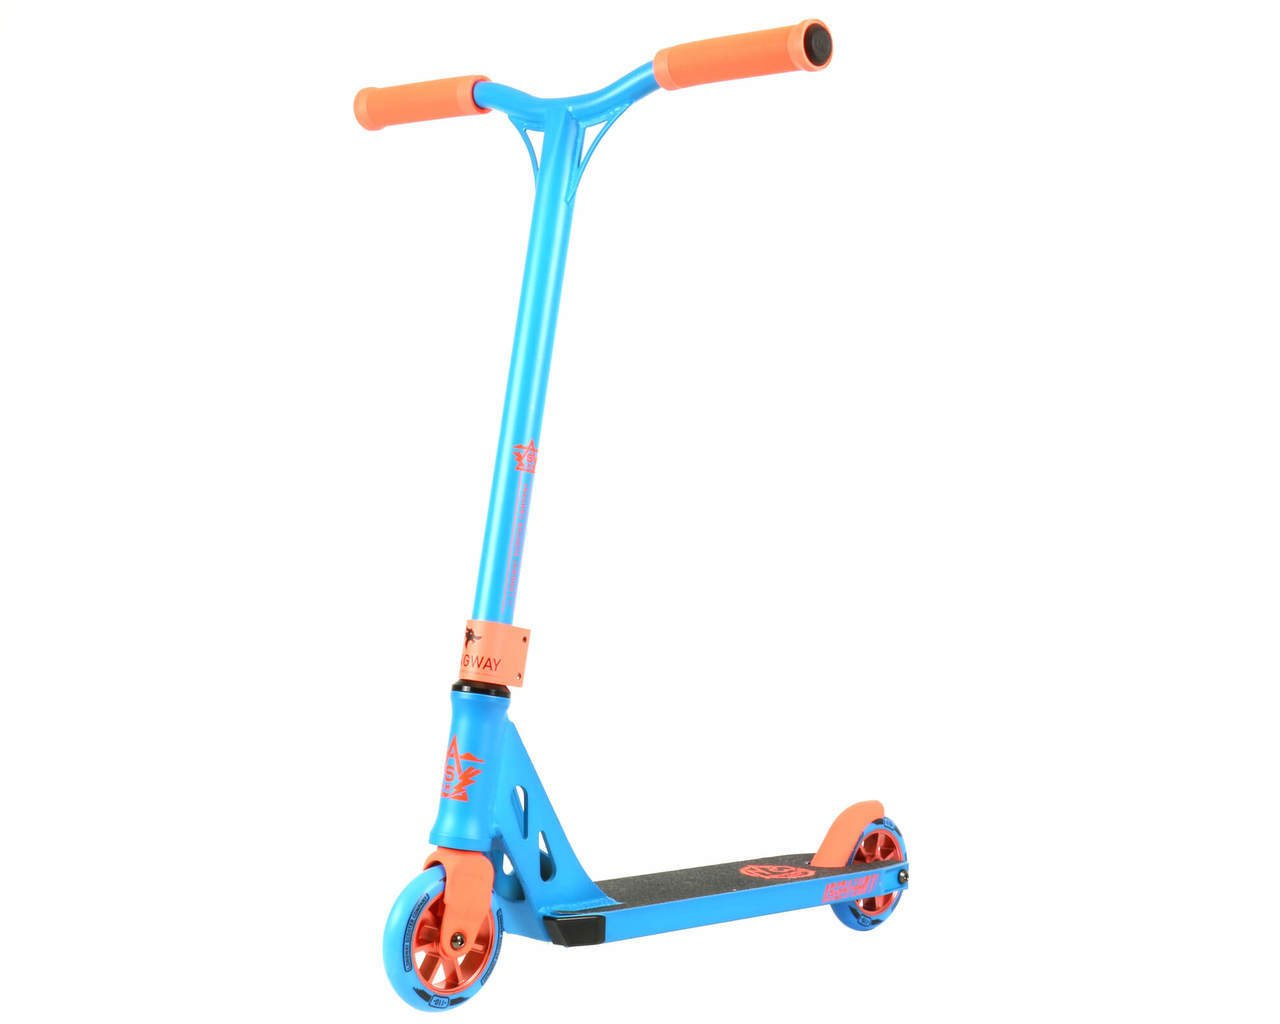 Summit Mini Trick Stunt Complete Scooter - Perfect for Young Beginner Freestyle Scooter Rider - Small Handlebars and Small Deck Plate - The WORLD'S Favorite Professional Mini Kick Push Scooter (Blue) by LONGWAY